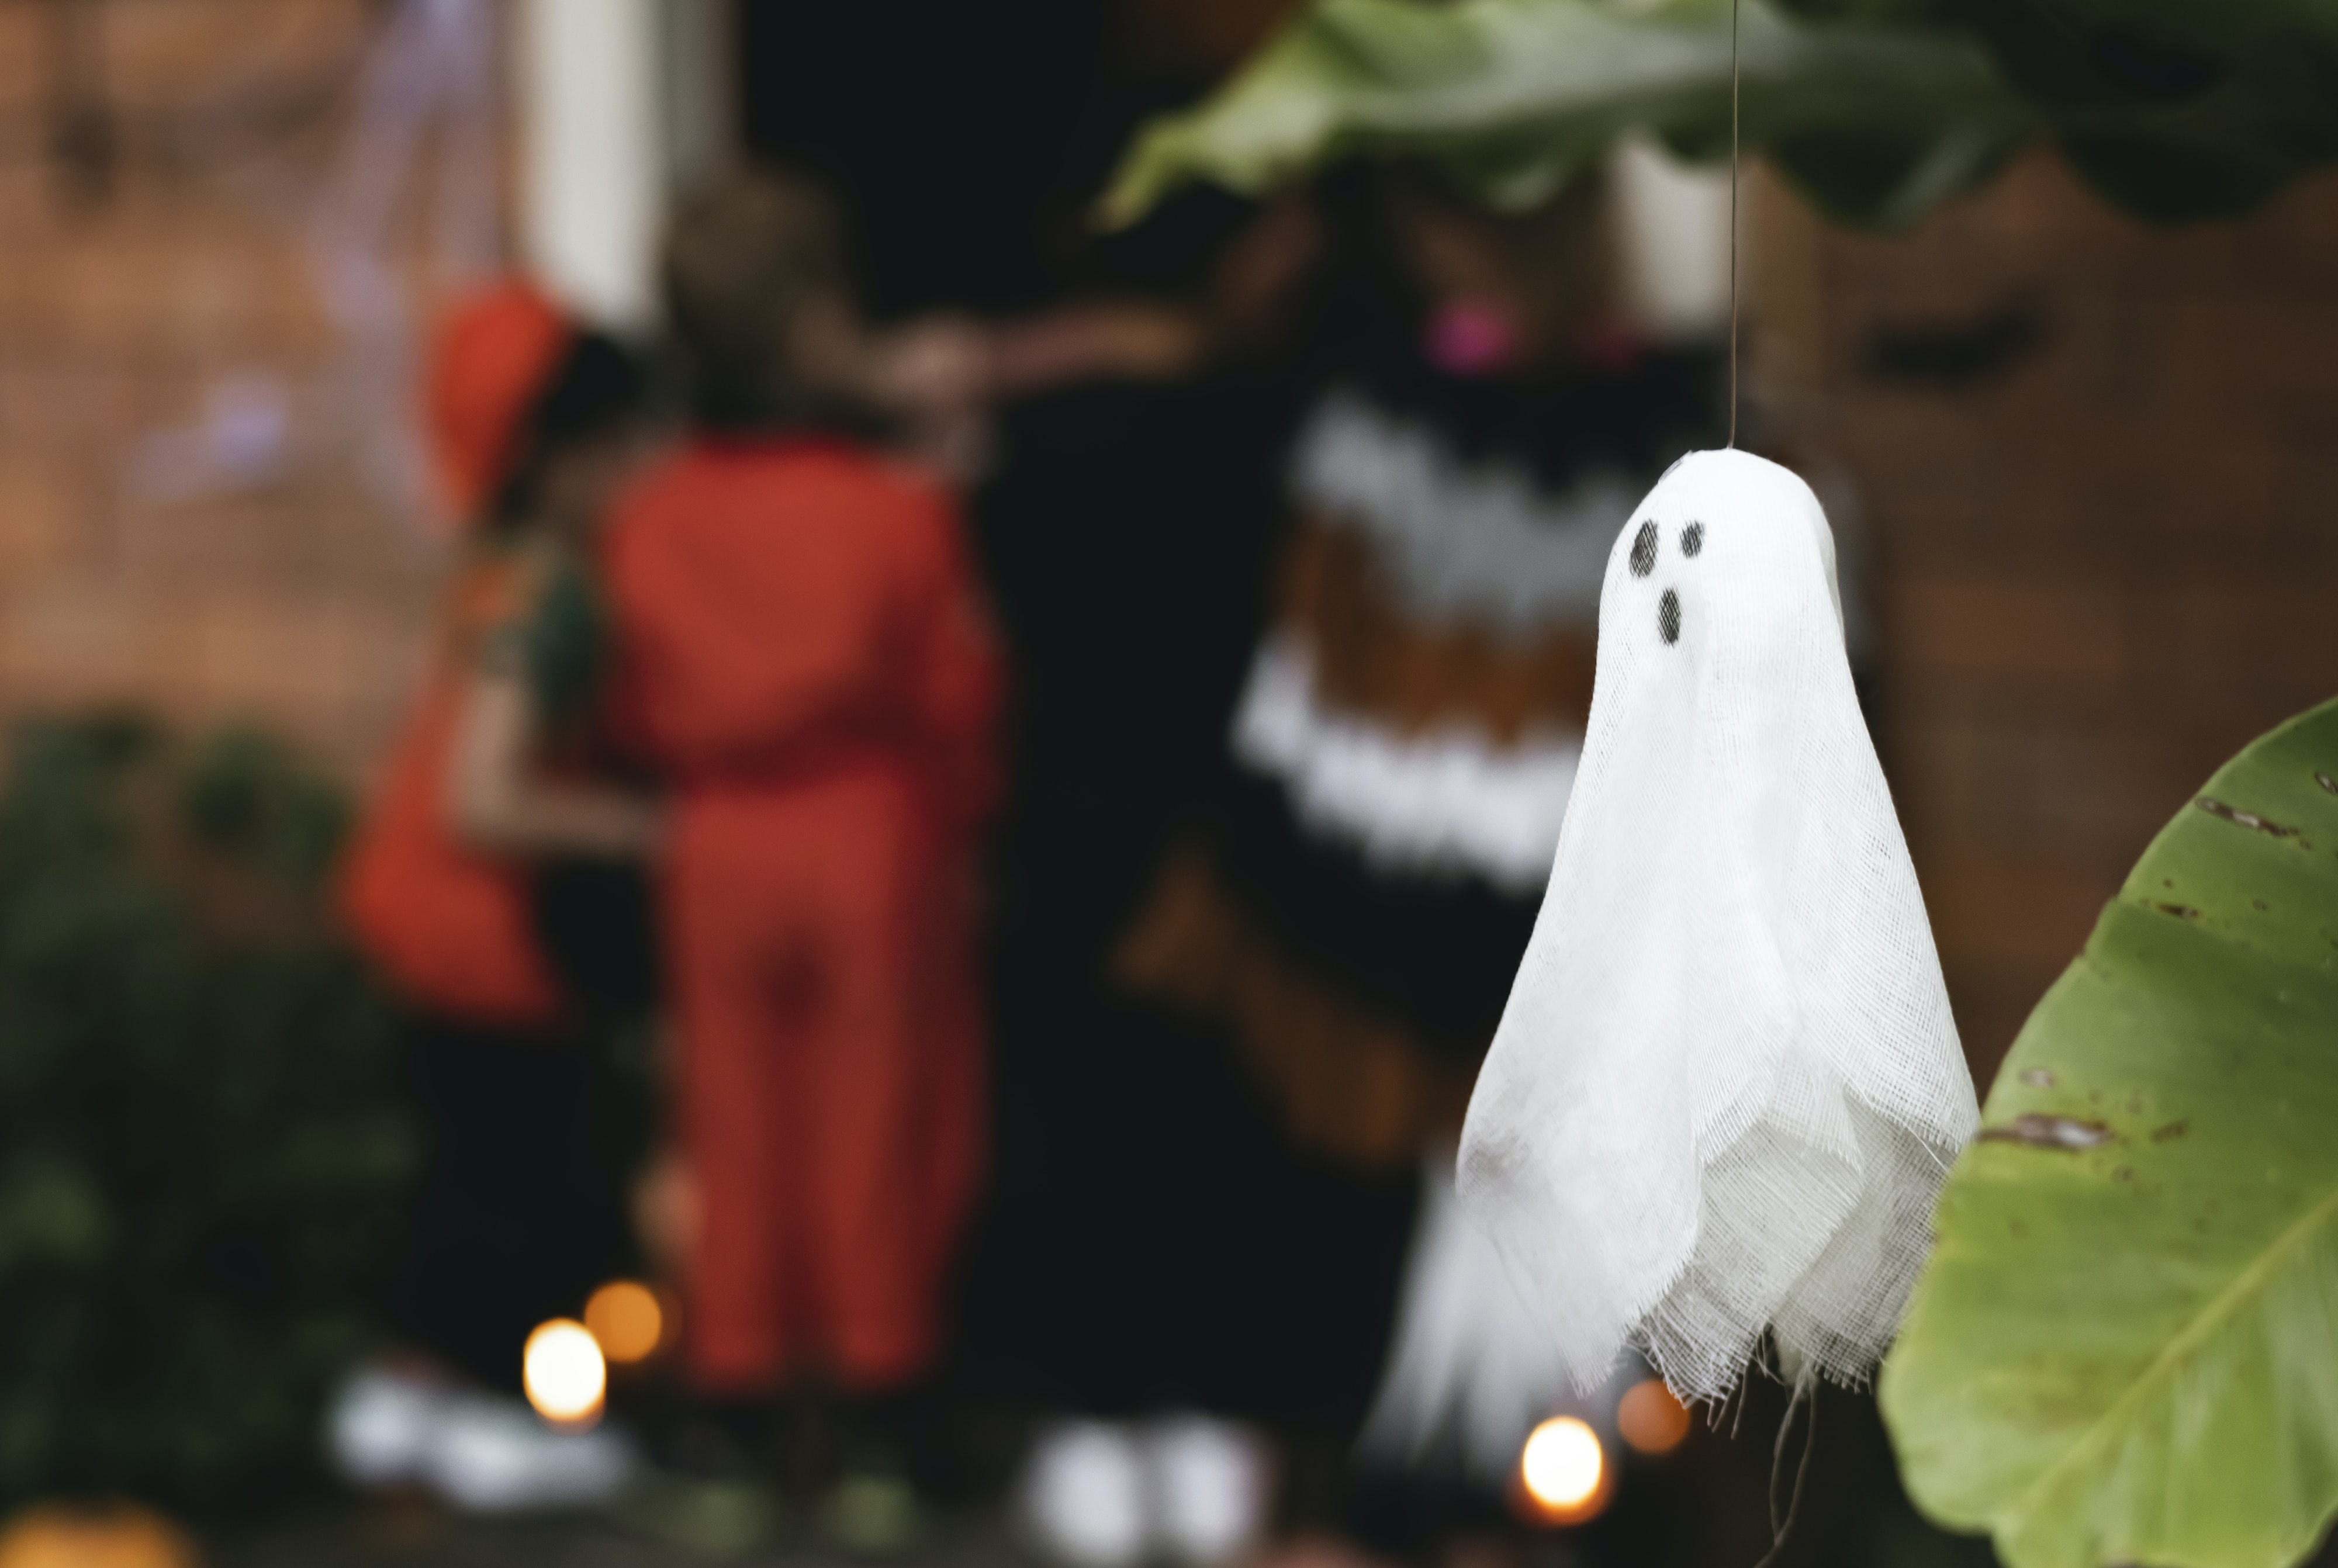 selective focus photo of hanging white ghost decor